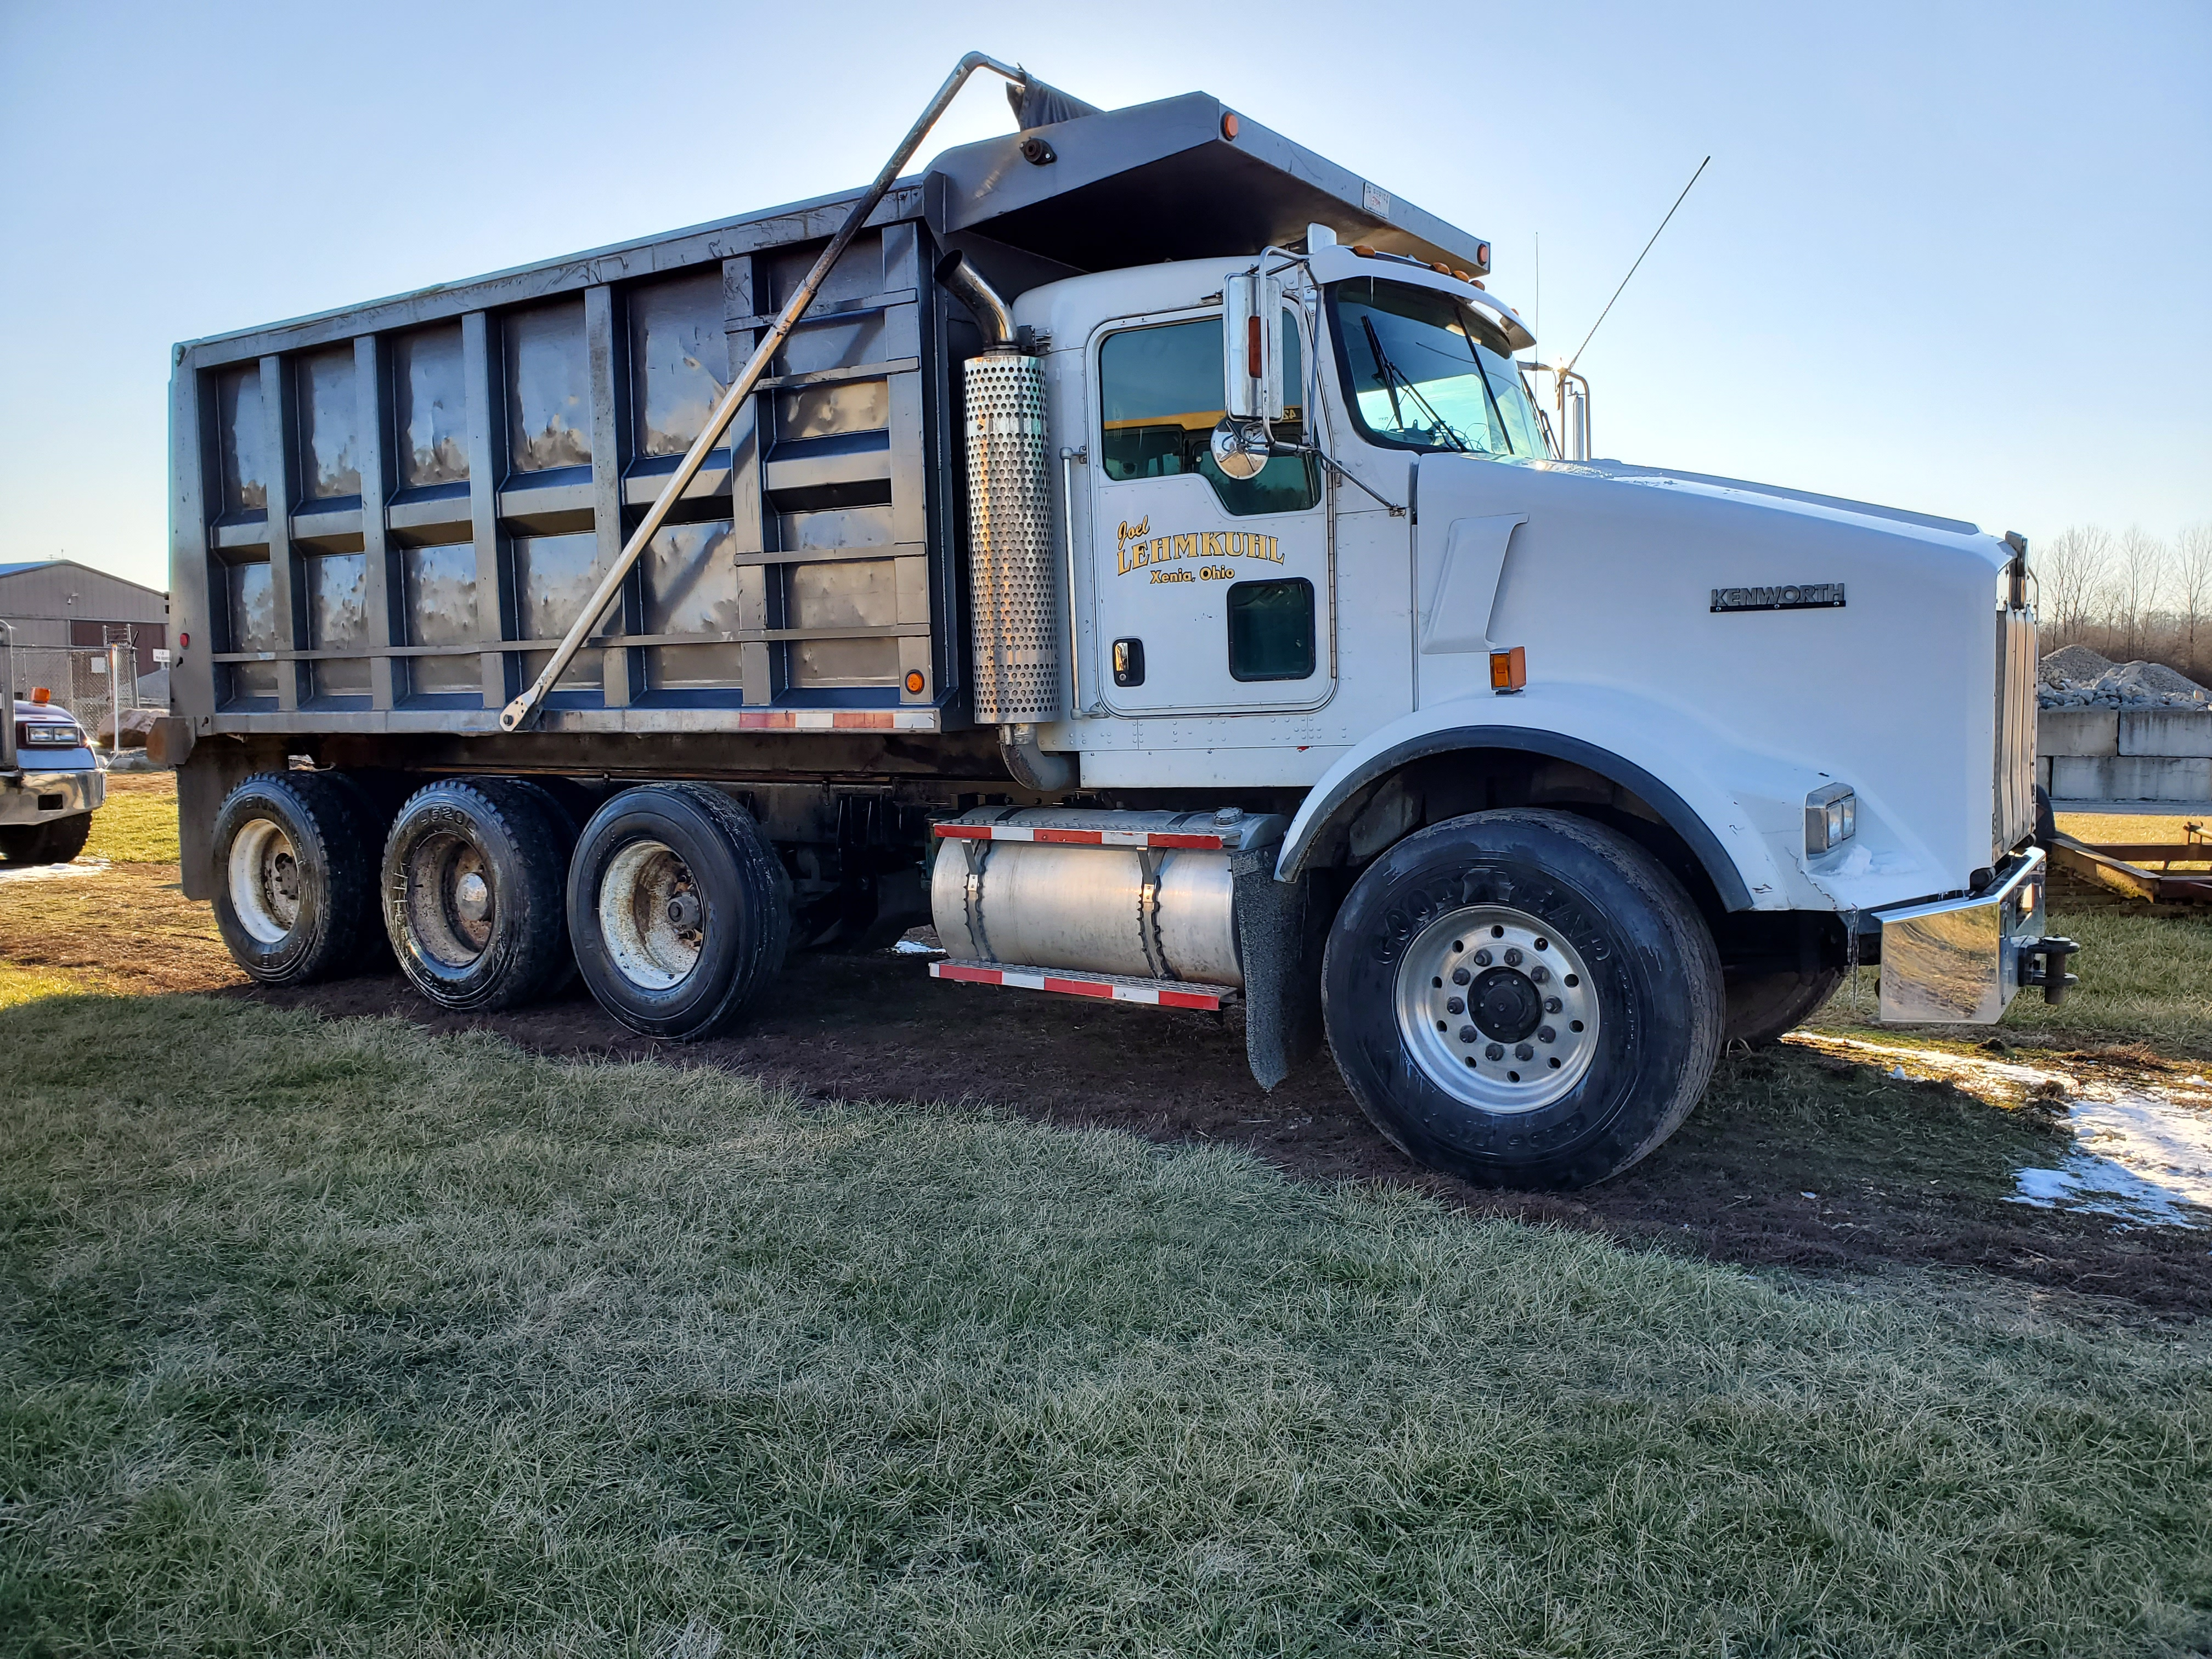 Lot 30 - 2004 Kenworth T-800, 385 HP, 46,000 lb Suspension, Eaton 10 Speed, Ox Bodies 16' Bed 487,097 Miles